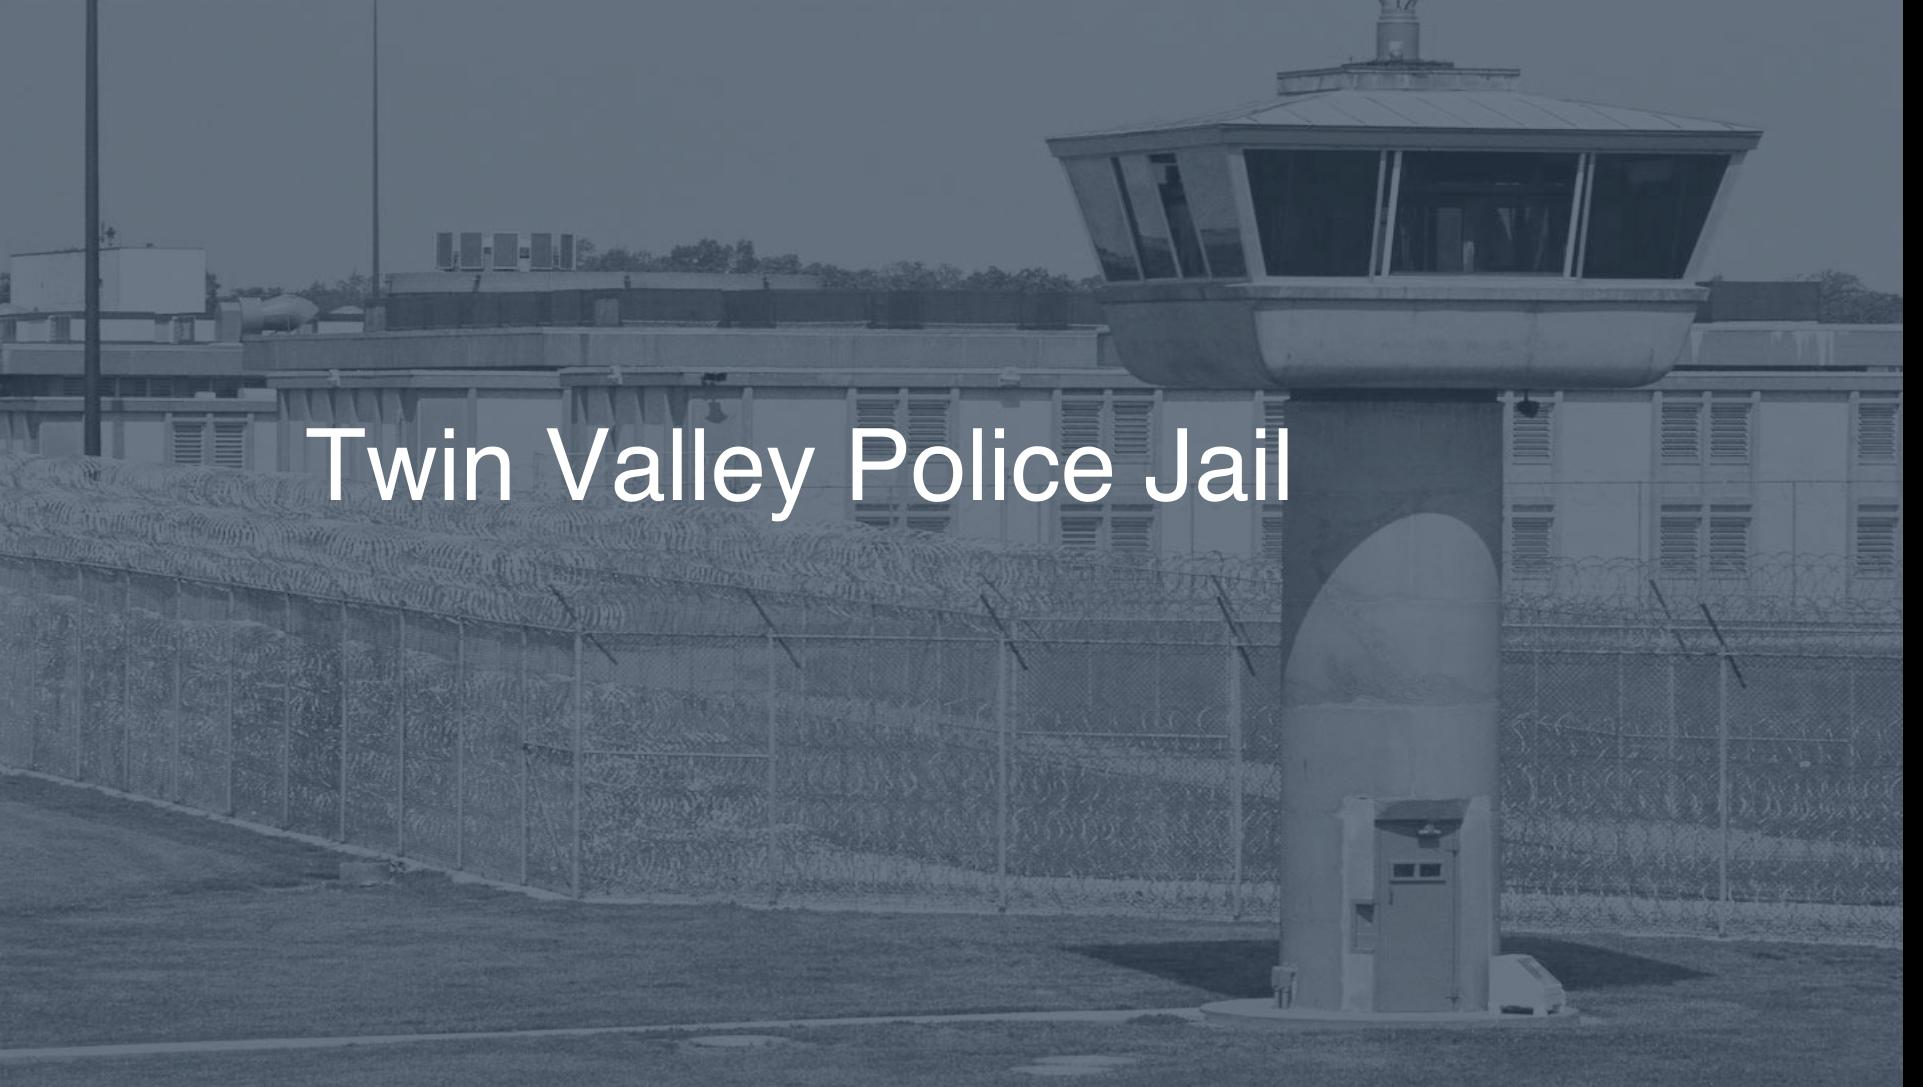 Twin Valley Police Jail | Pigeonly - Inmate Search, Locate